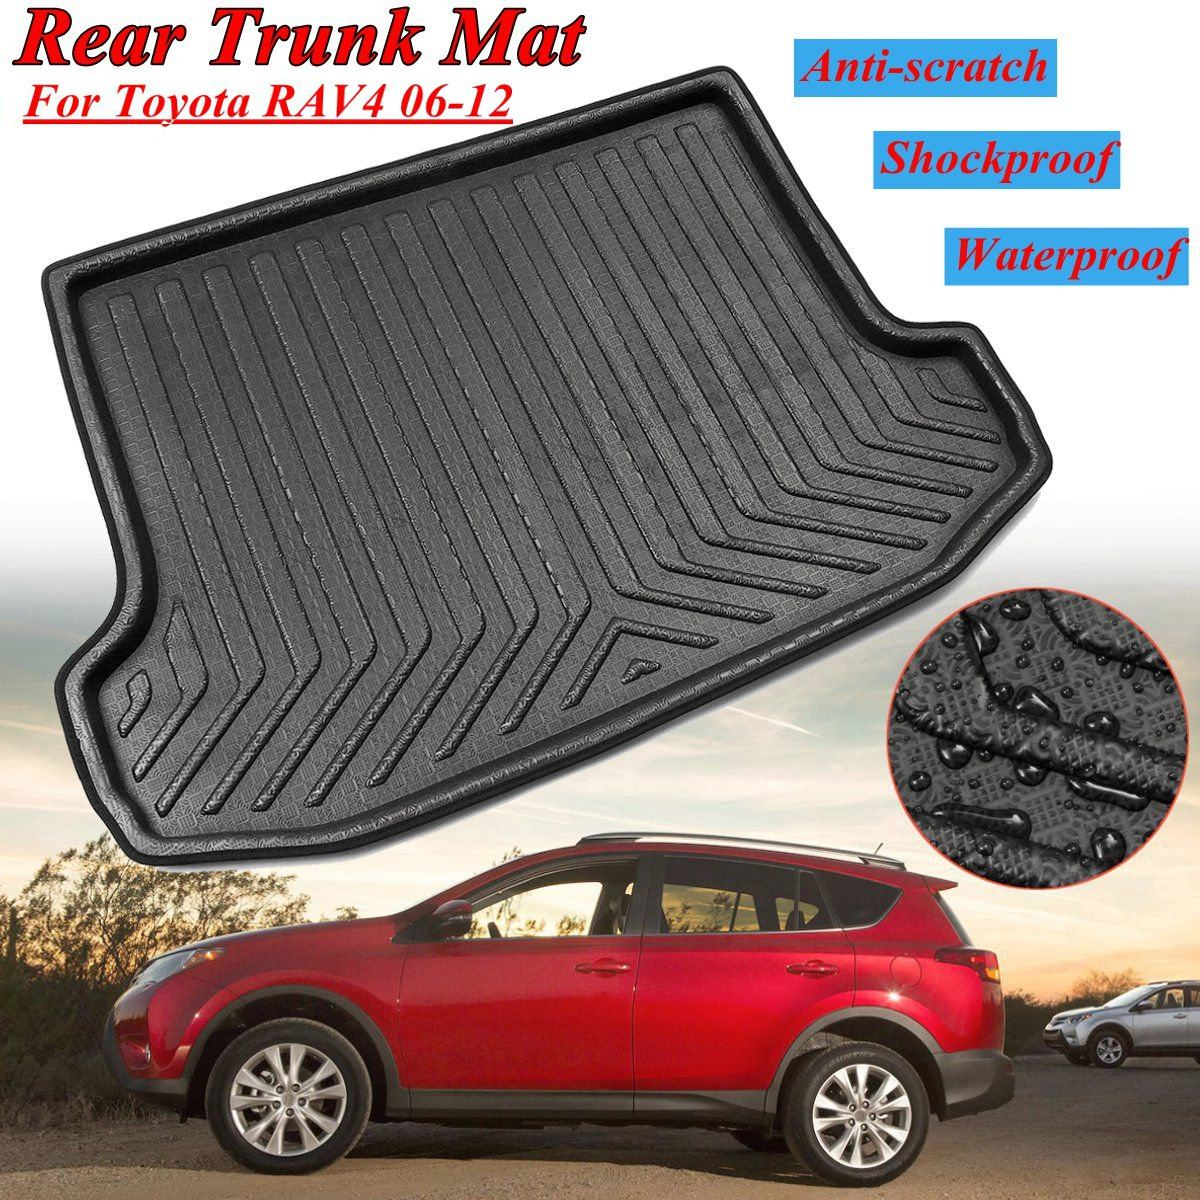 Boot-Liner Cargo-Mat Toyota Rav4 Floor-Tray 2006 2009 Waterproof 2008 2007 for Rear Trunk title=